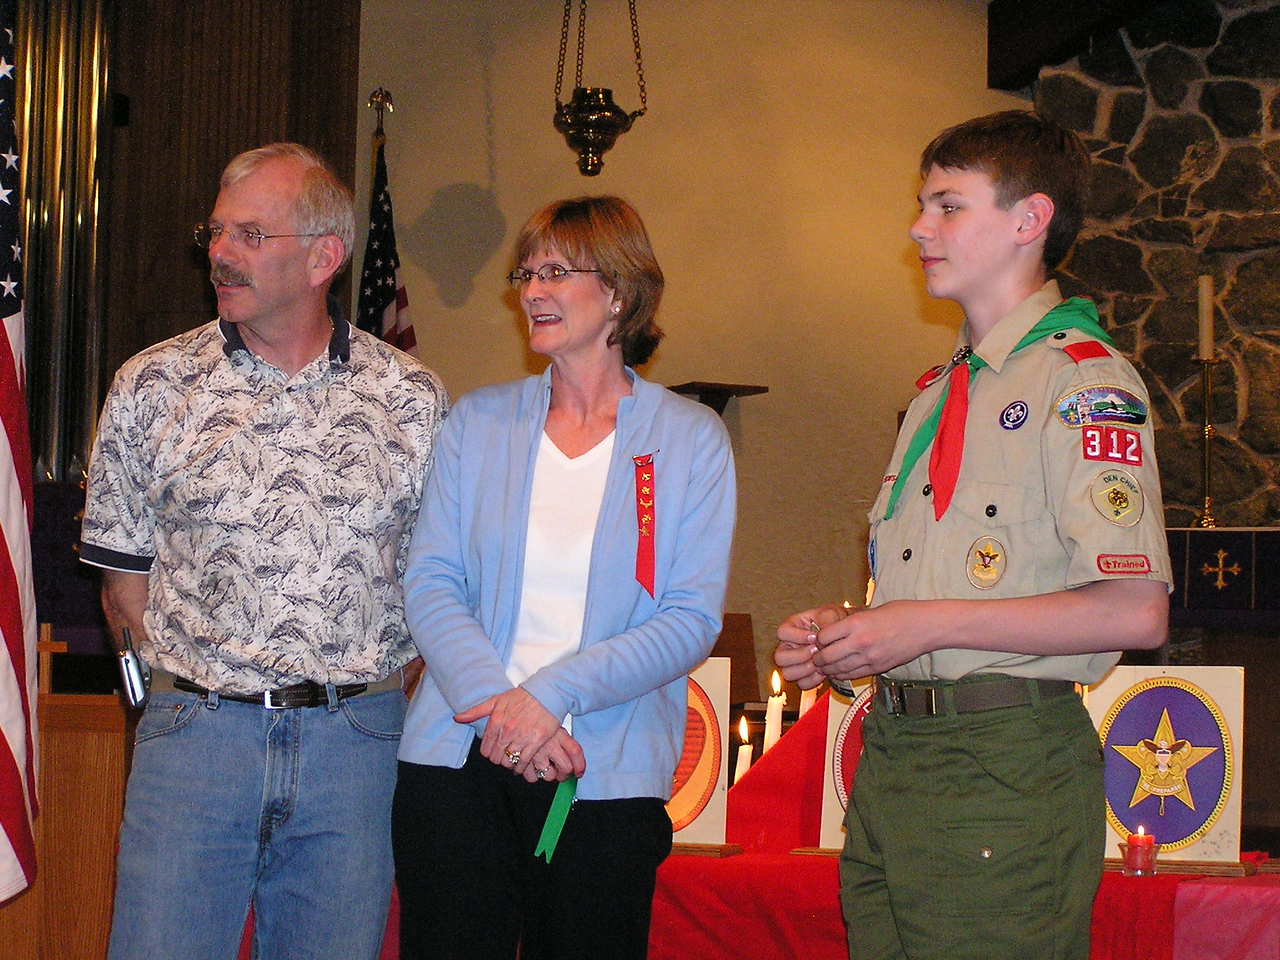 04-03 Scouts and Vermont 011